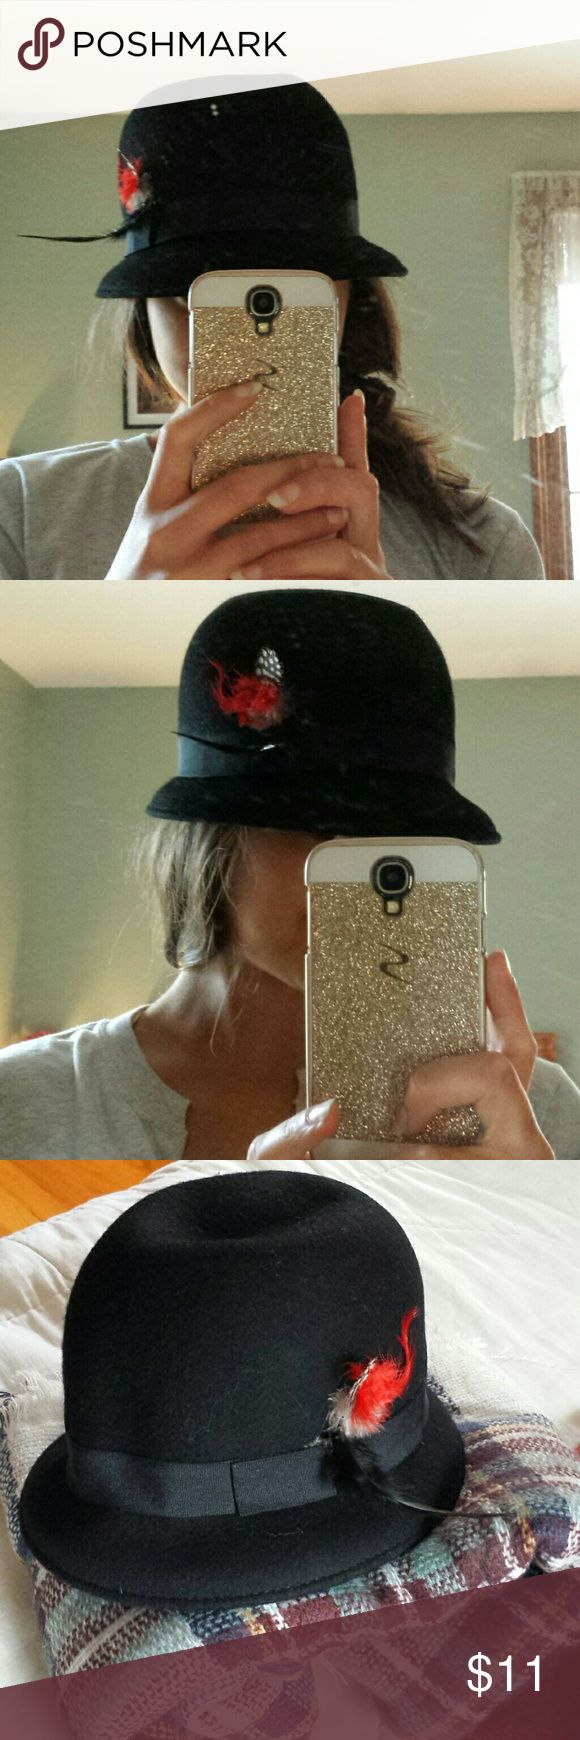 Fitted Black Bowl Hat with Red Feathers In great condition, and such a fun, cute hat! Accessories Hats